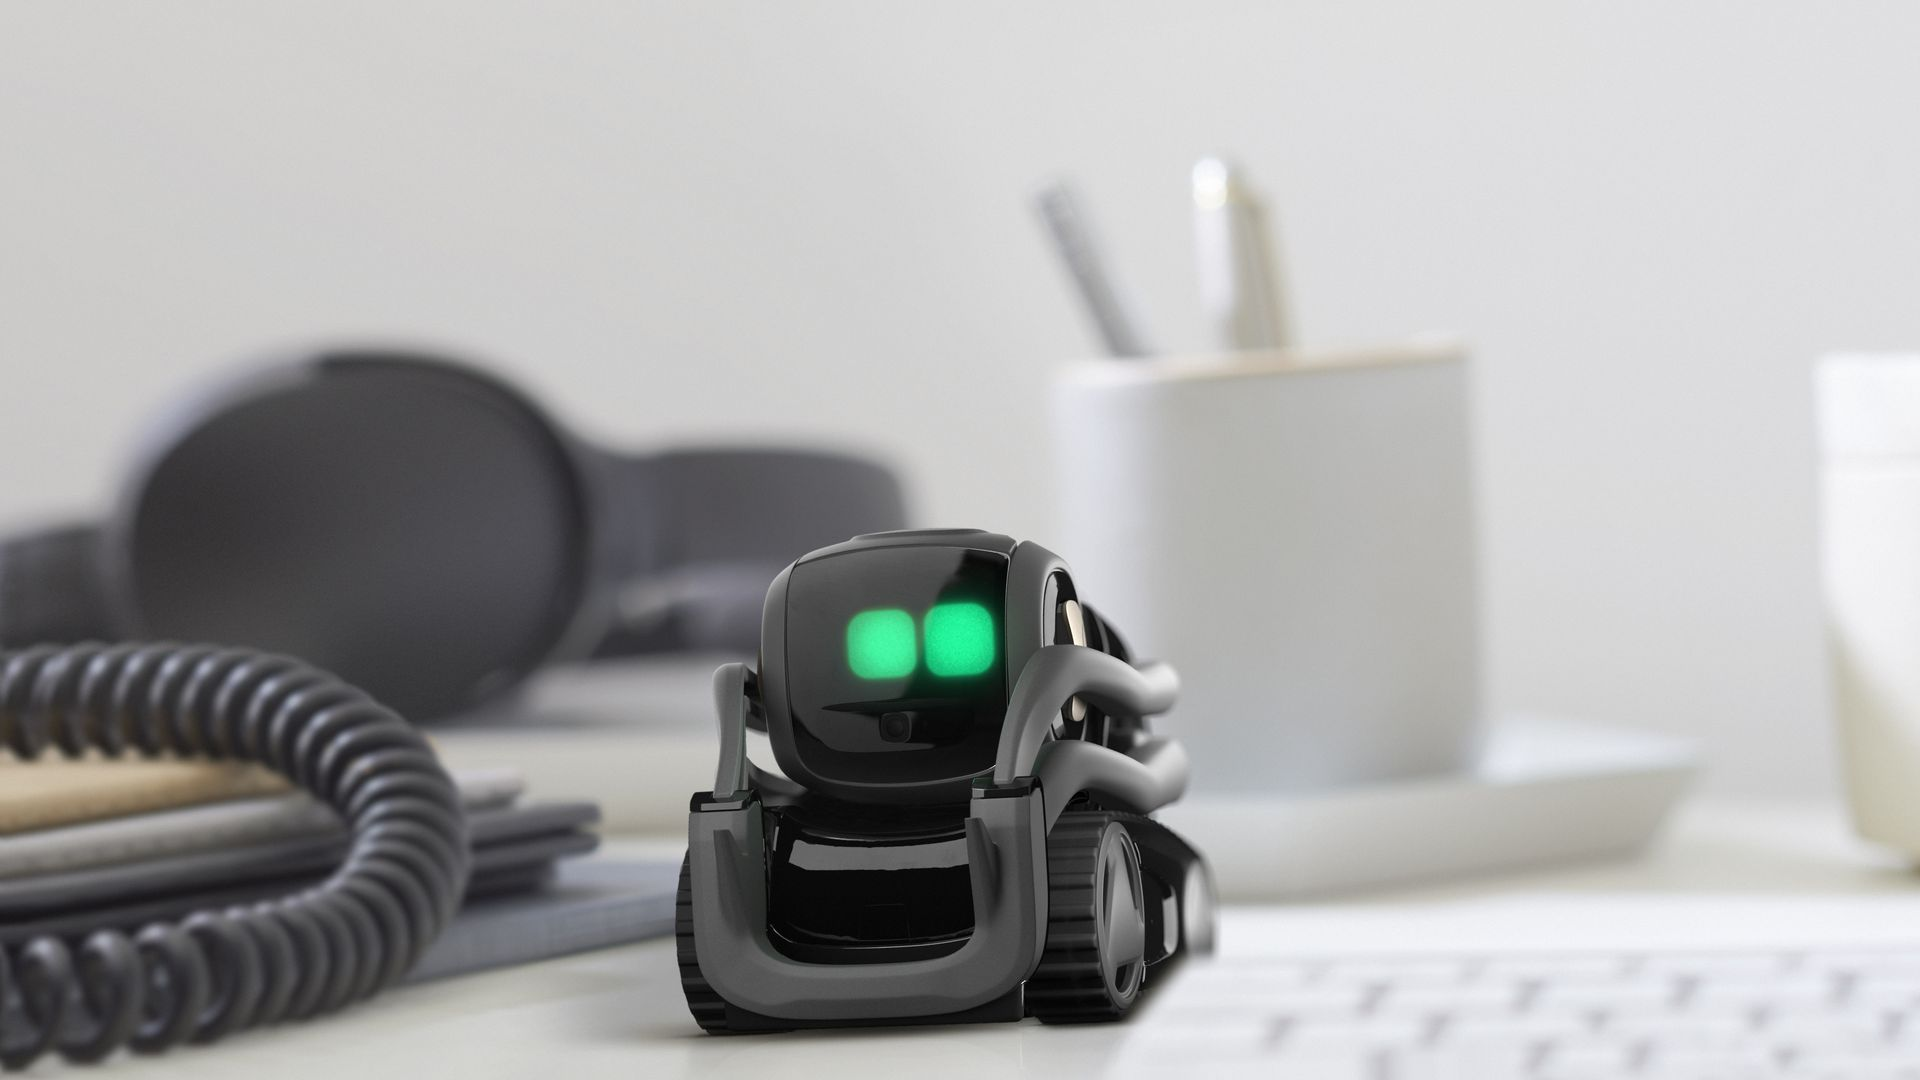 Anki's latest robot, Vector, went on sale last October for $249.